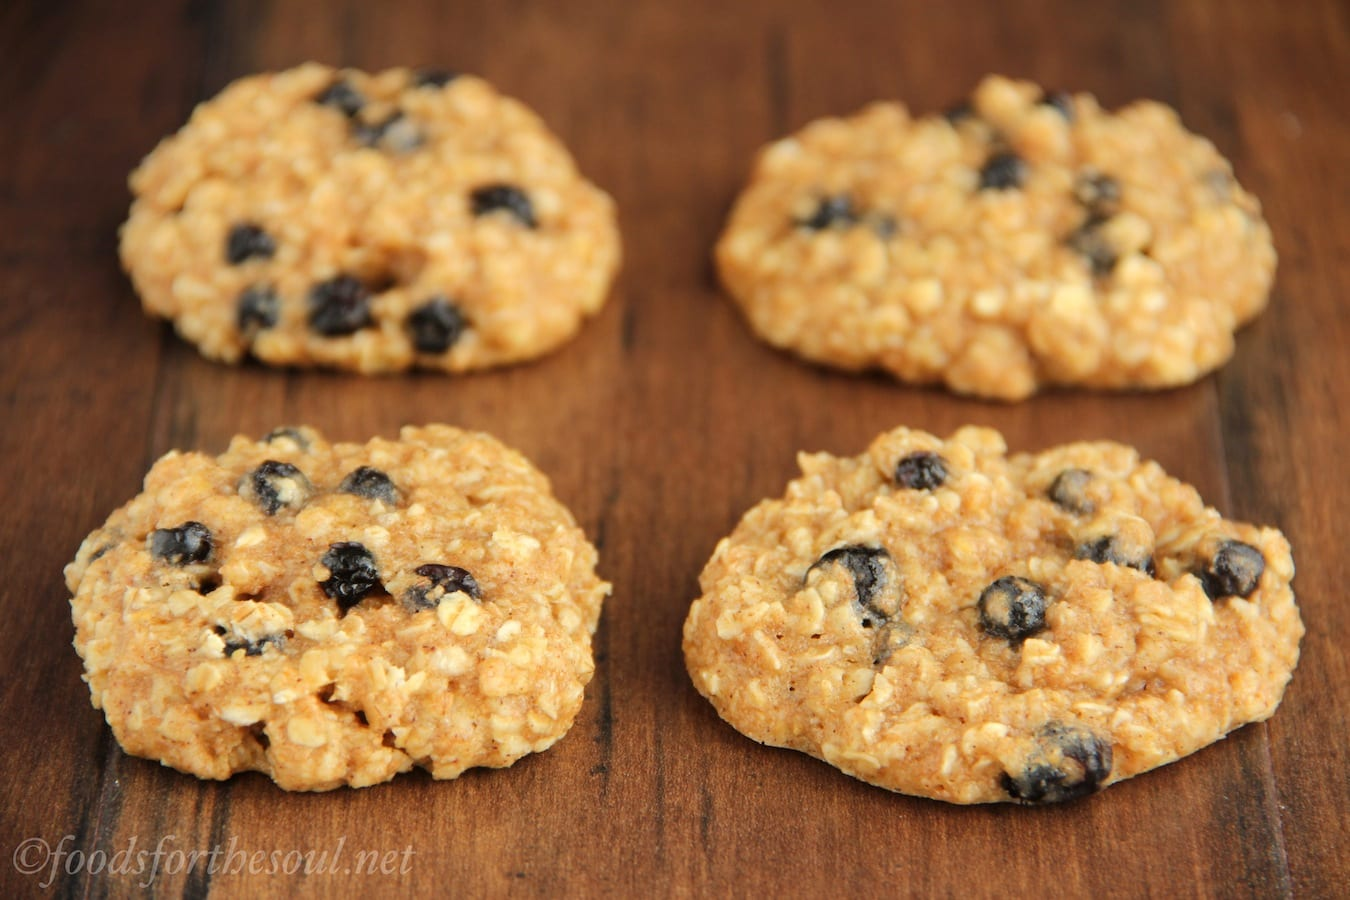 Blueberry Oatmeal Cookies